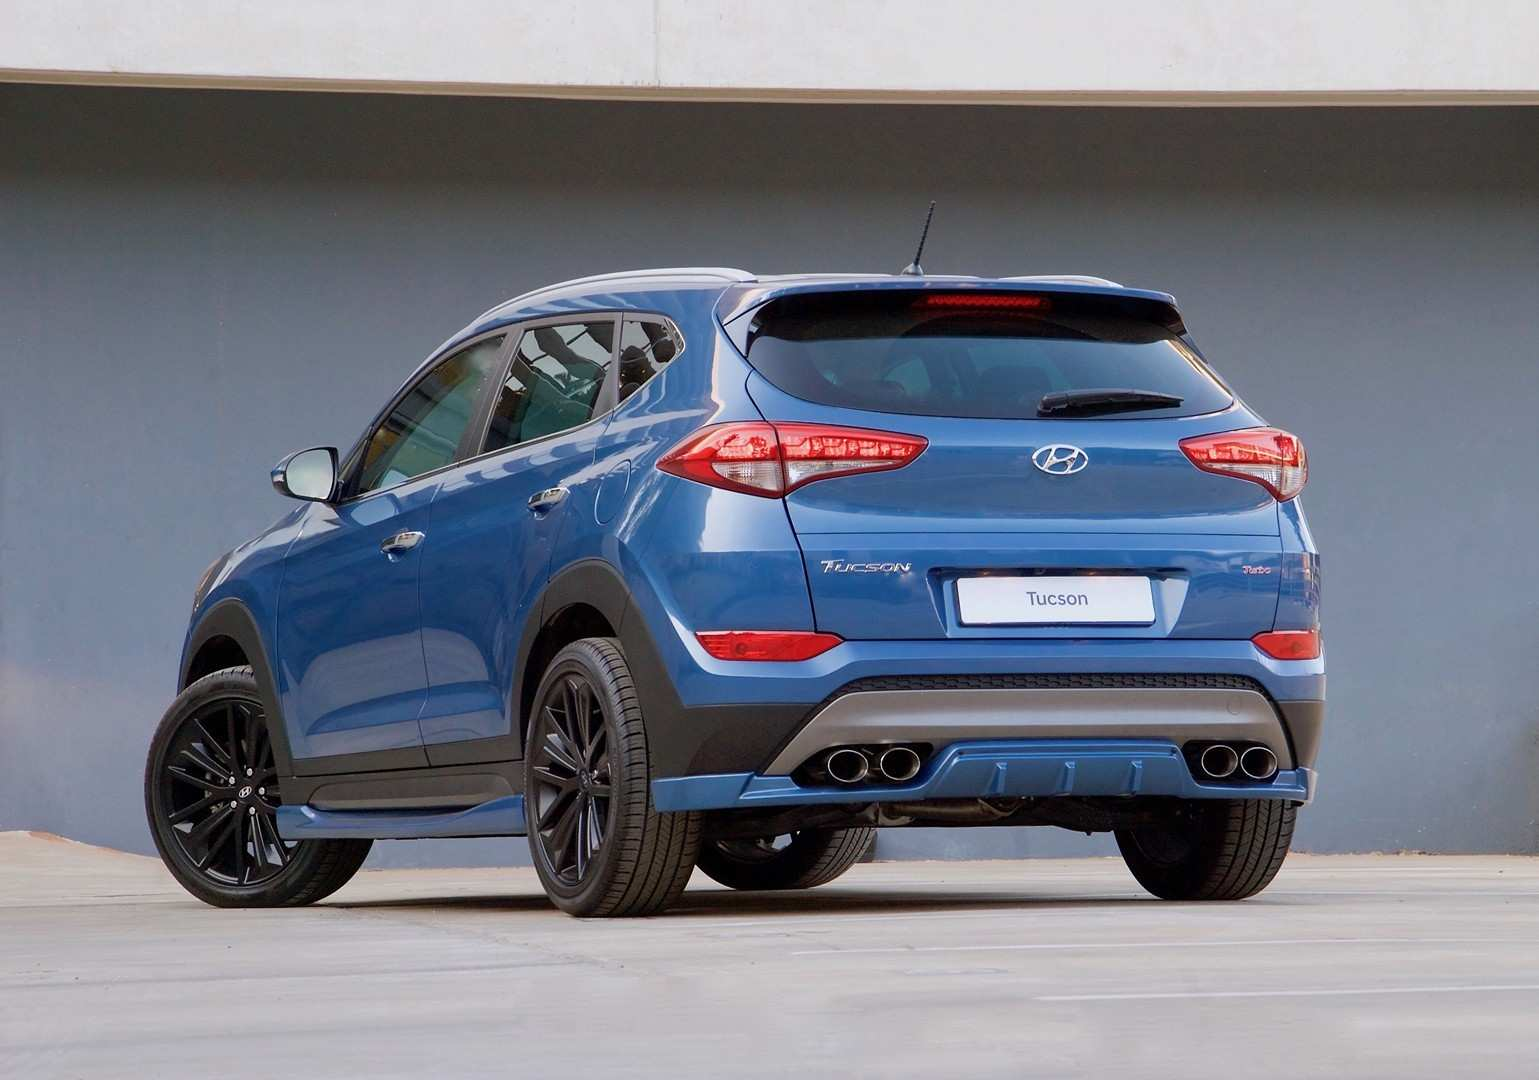 21 New Hyundai Tucson 2020 Model Performance